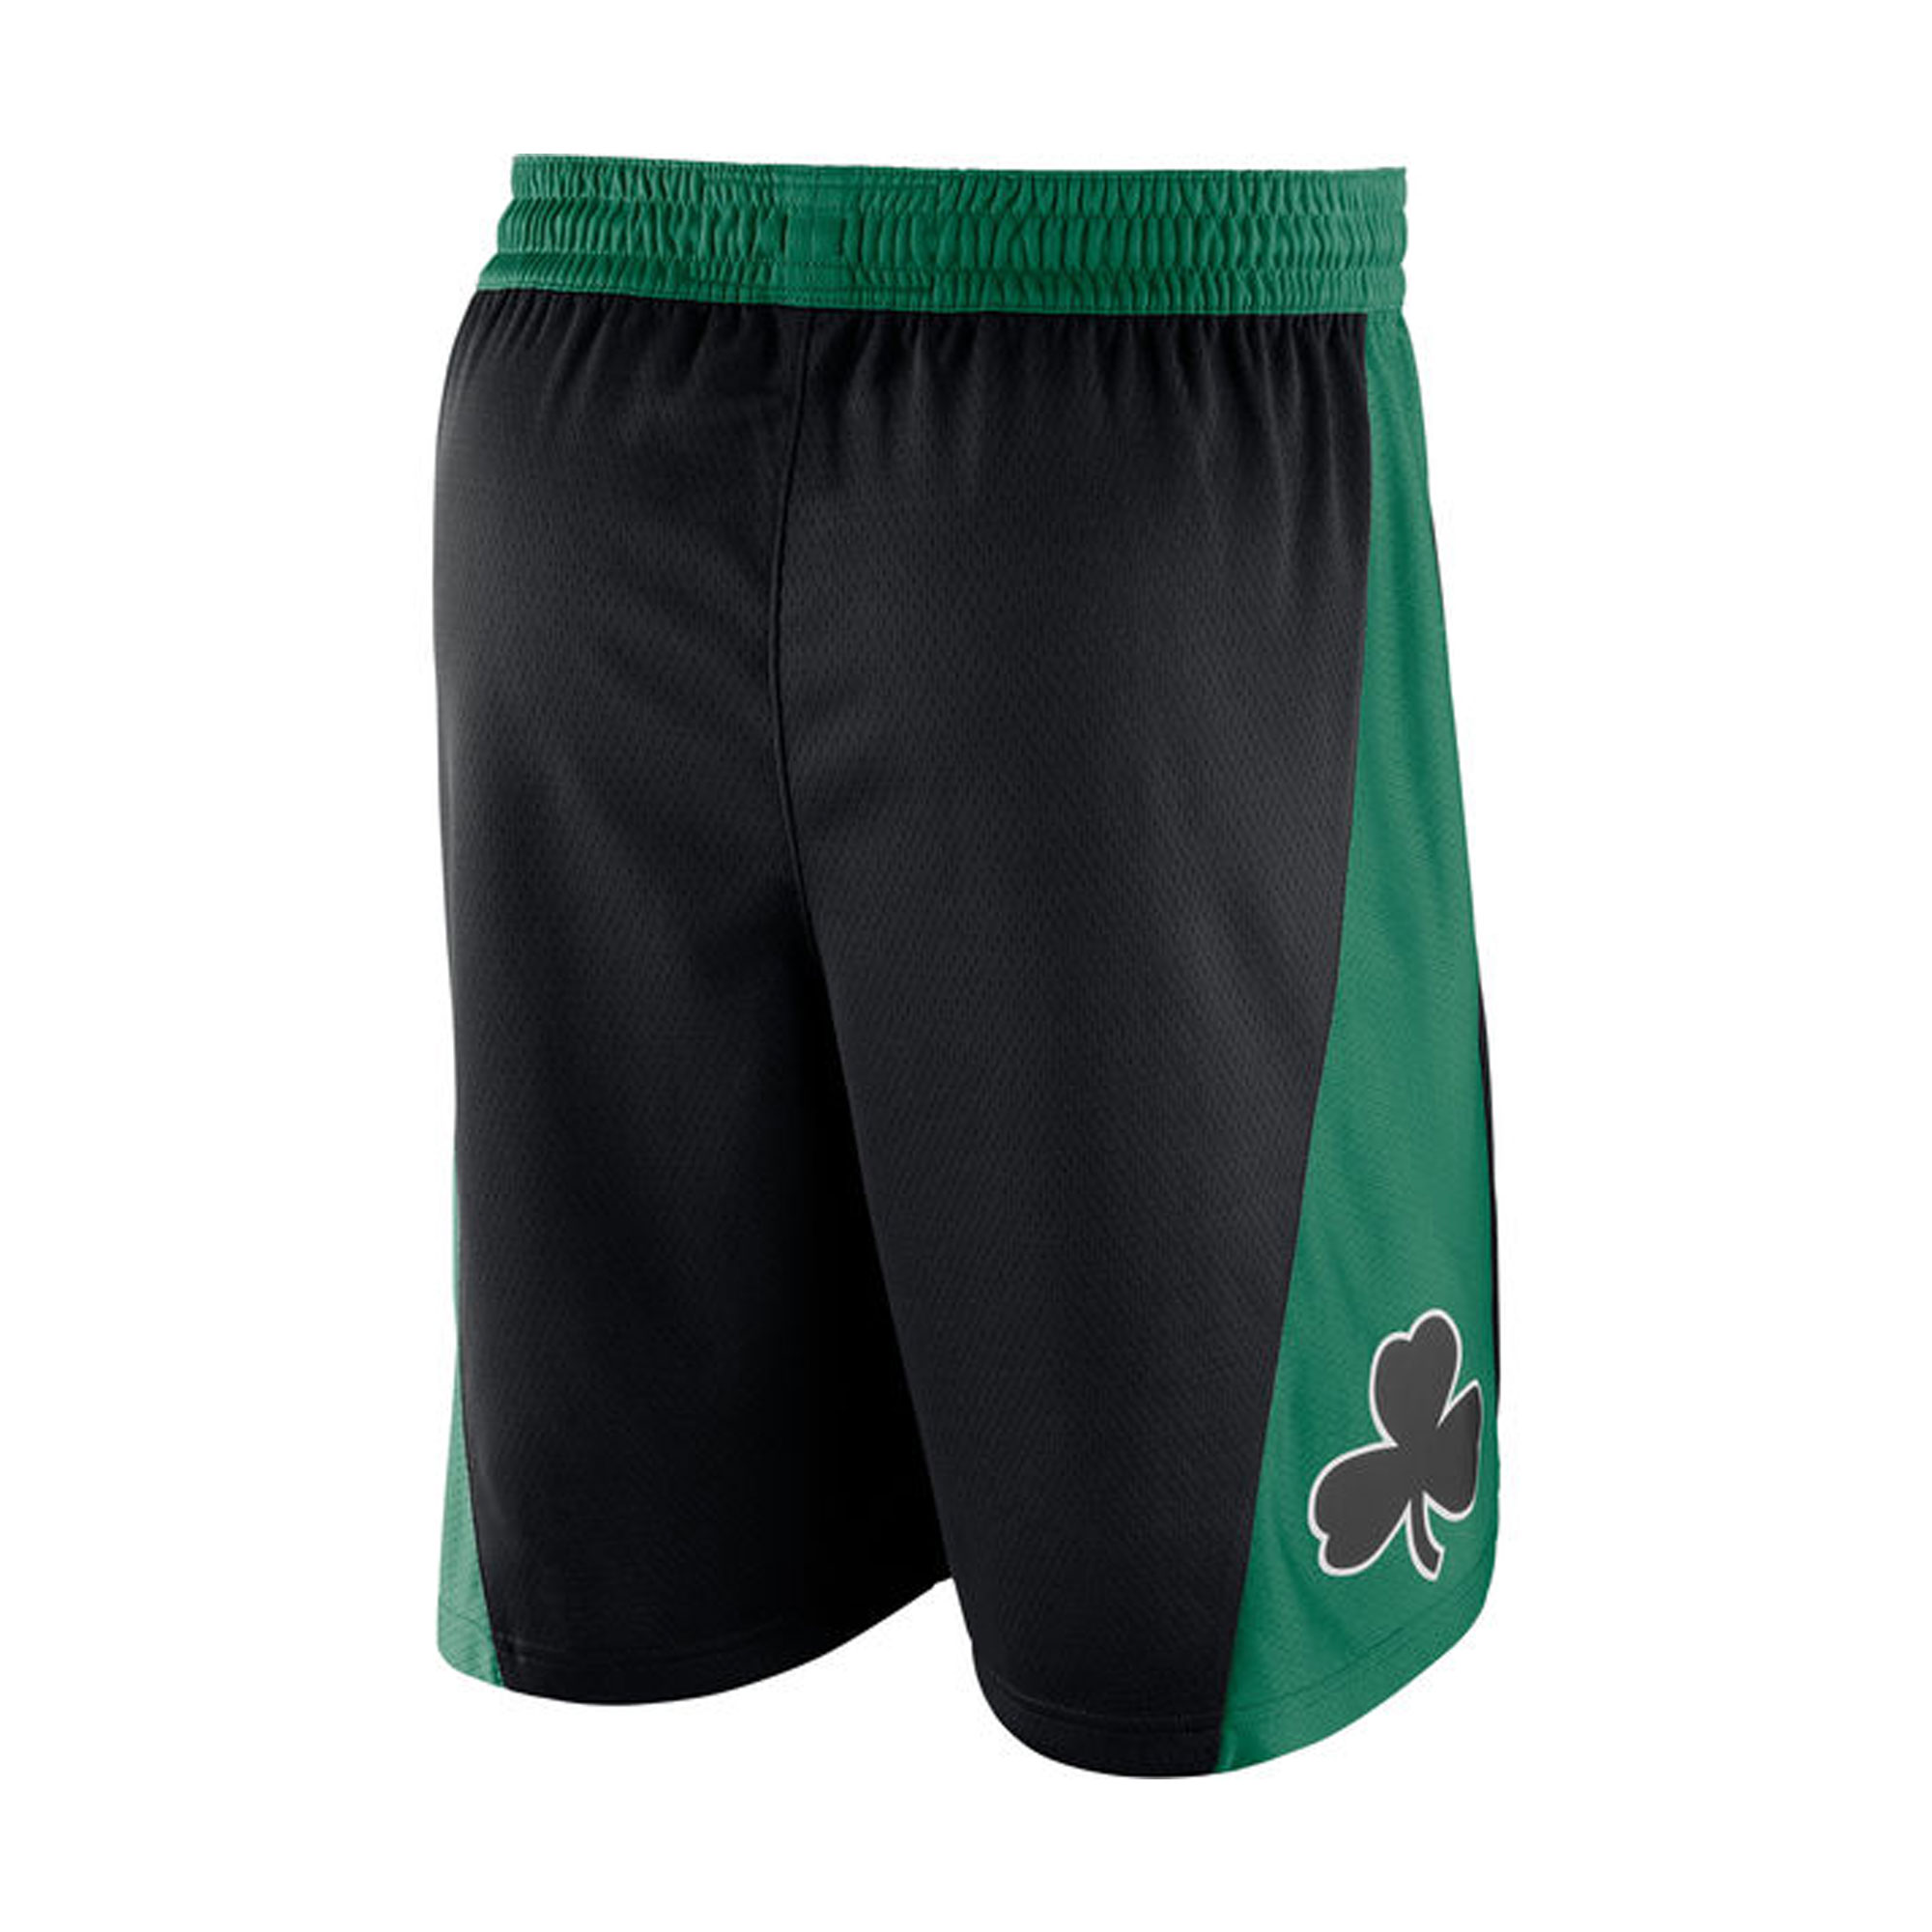 Boston Celtics Short (SRT-BLC-CELTICS)